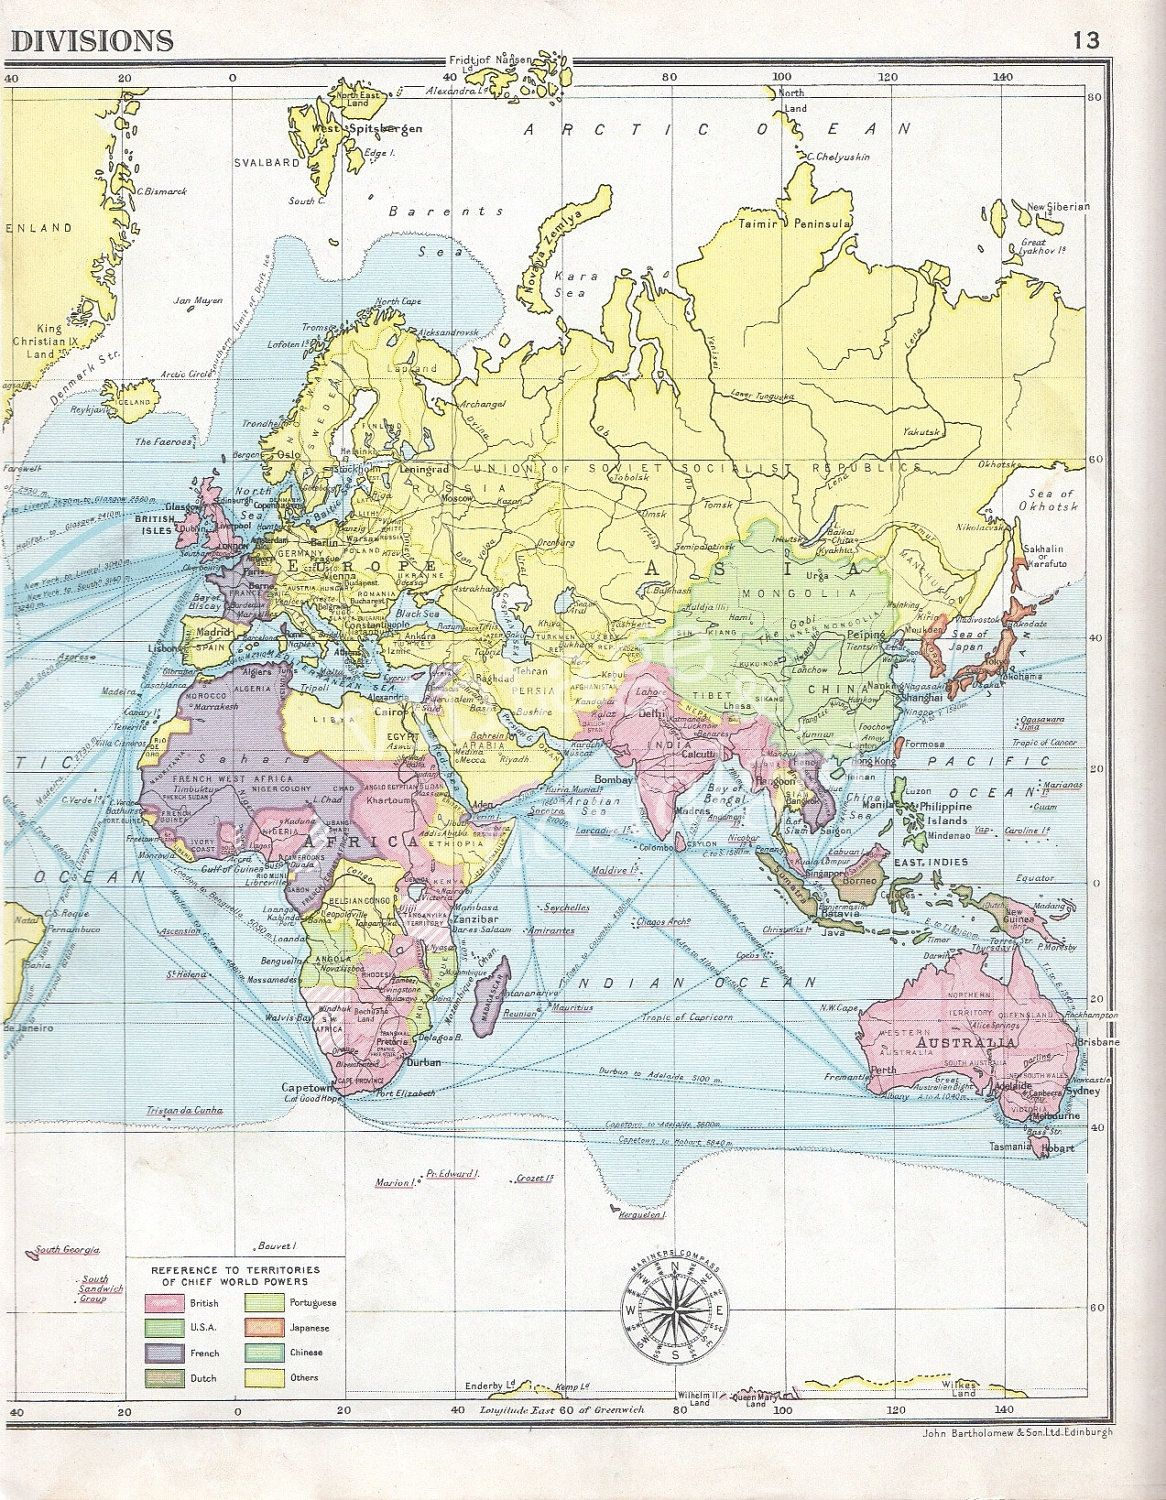 1934 world map vintage world map transport routes wall map pastel 1934 world map vintage world map transport routes wall map pastel colours map decor 1895 gumiabroncs Gallery